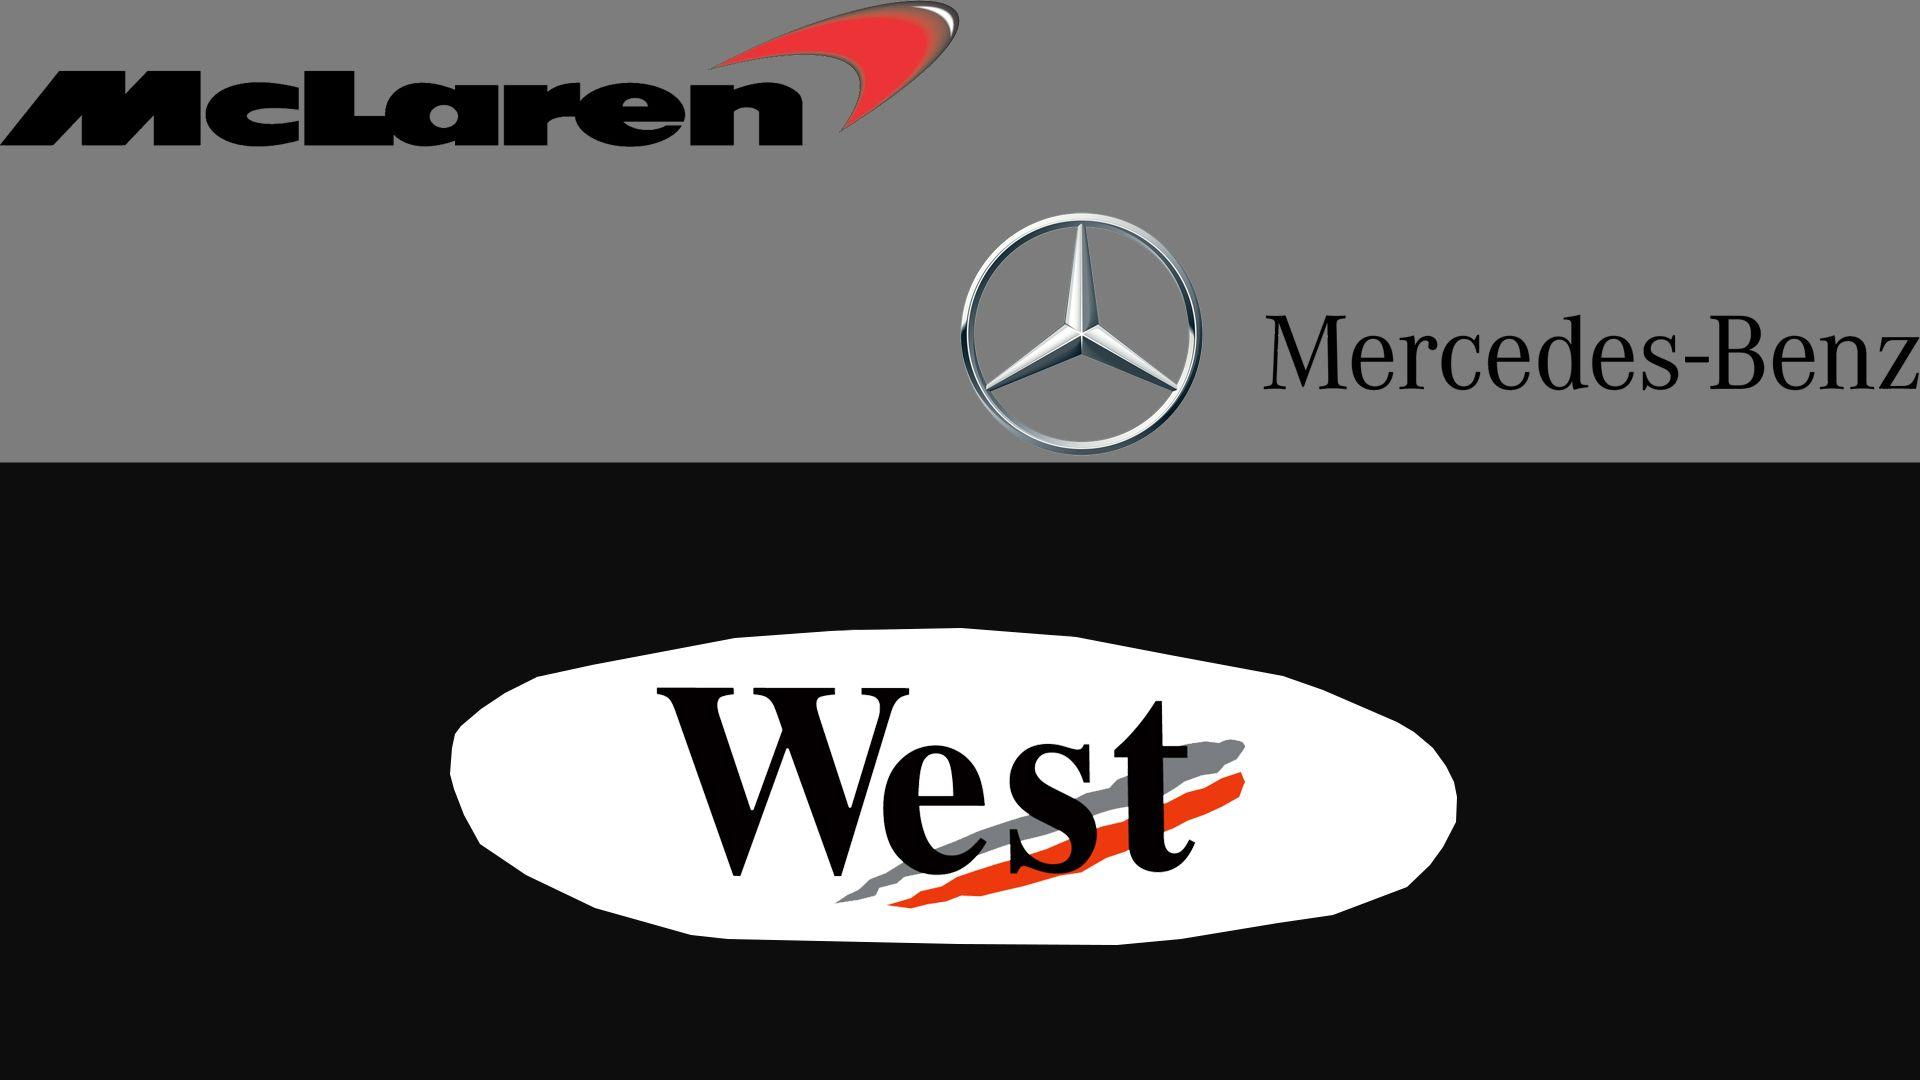 F1 Classic Car Livery Wallpapers - McLaren (West) by ...